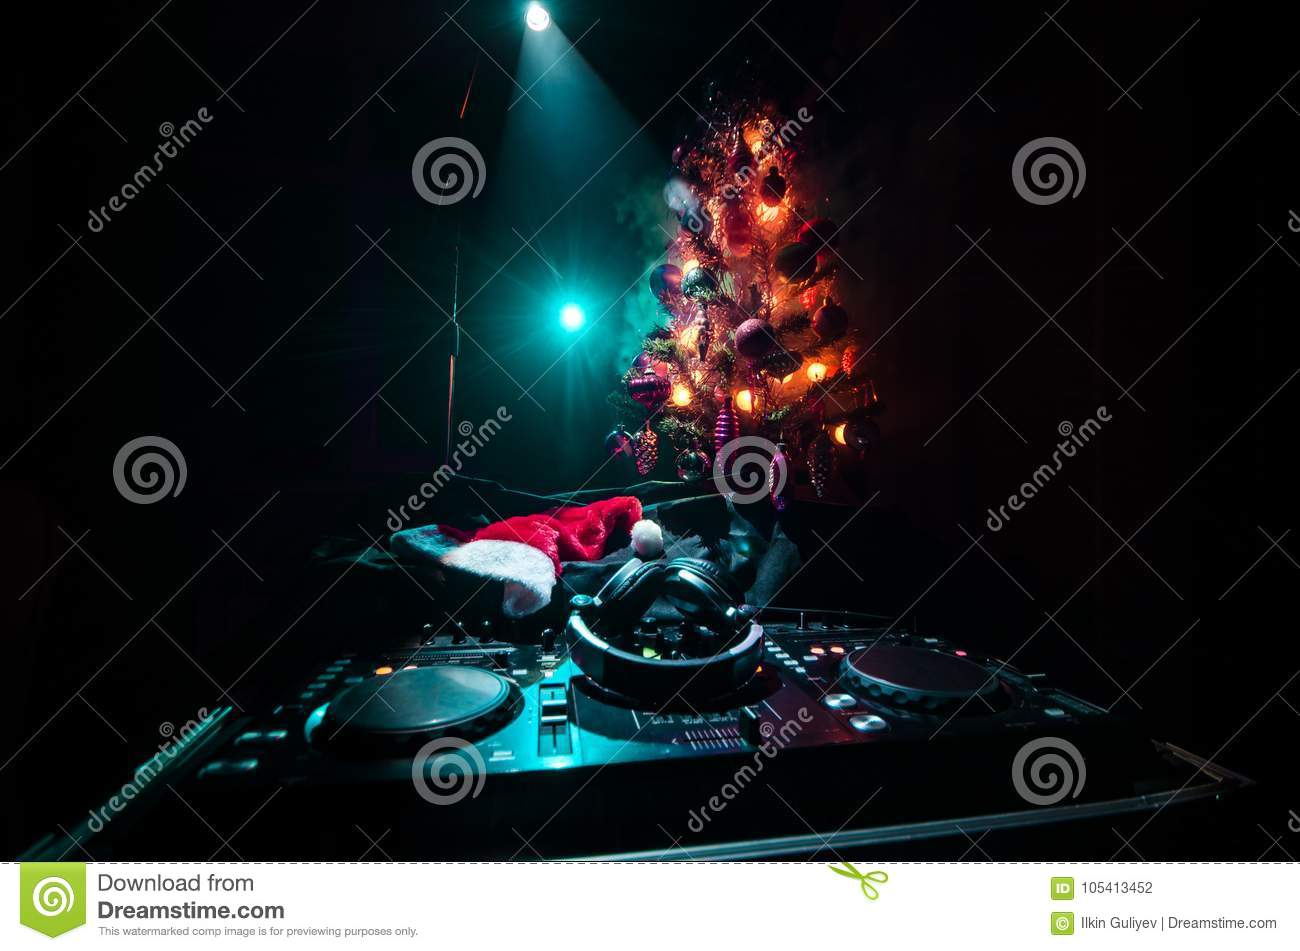 Dj mixer with headphones on dark nightclub background with Christmas tree New Year Eve. Close up view of New Year elements or symb